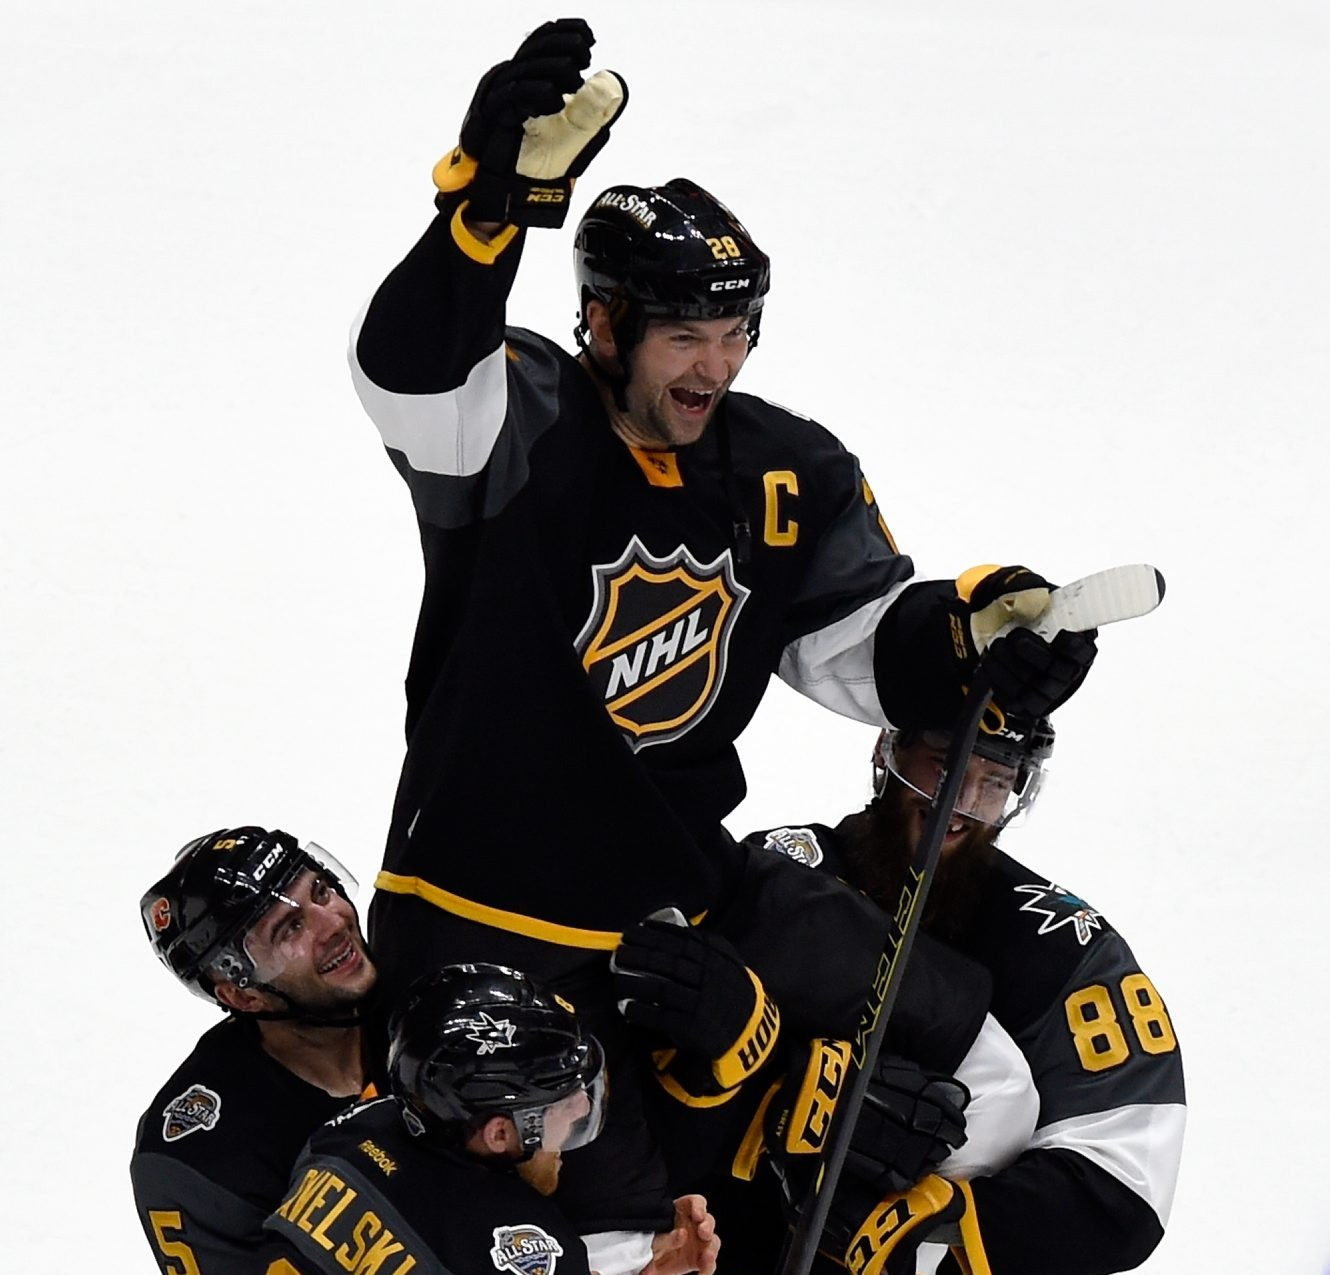 John Scott's teammates carry him off the ice after their team won the NHL All-Star Game on Jan. 31. (Getty Images)